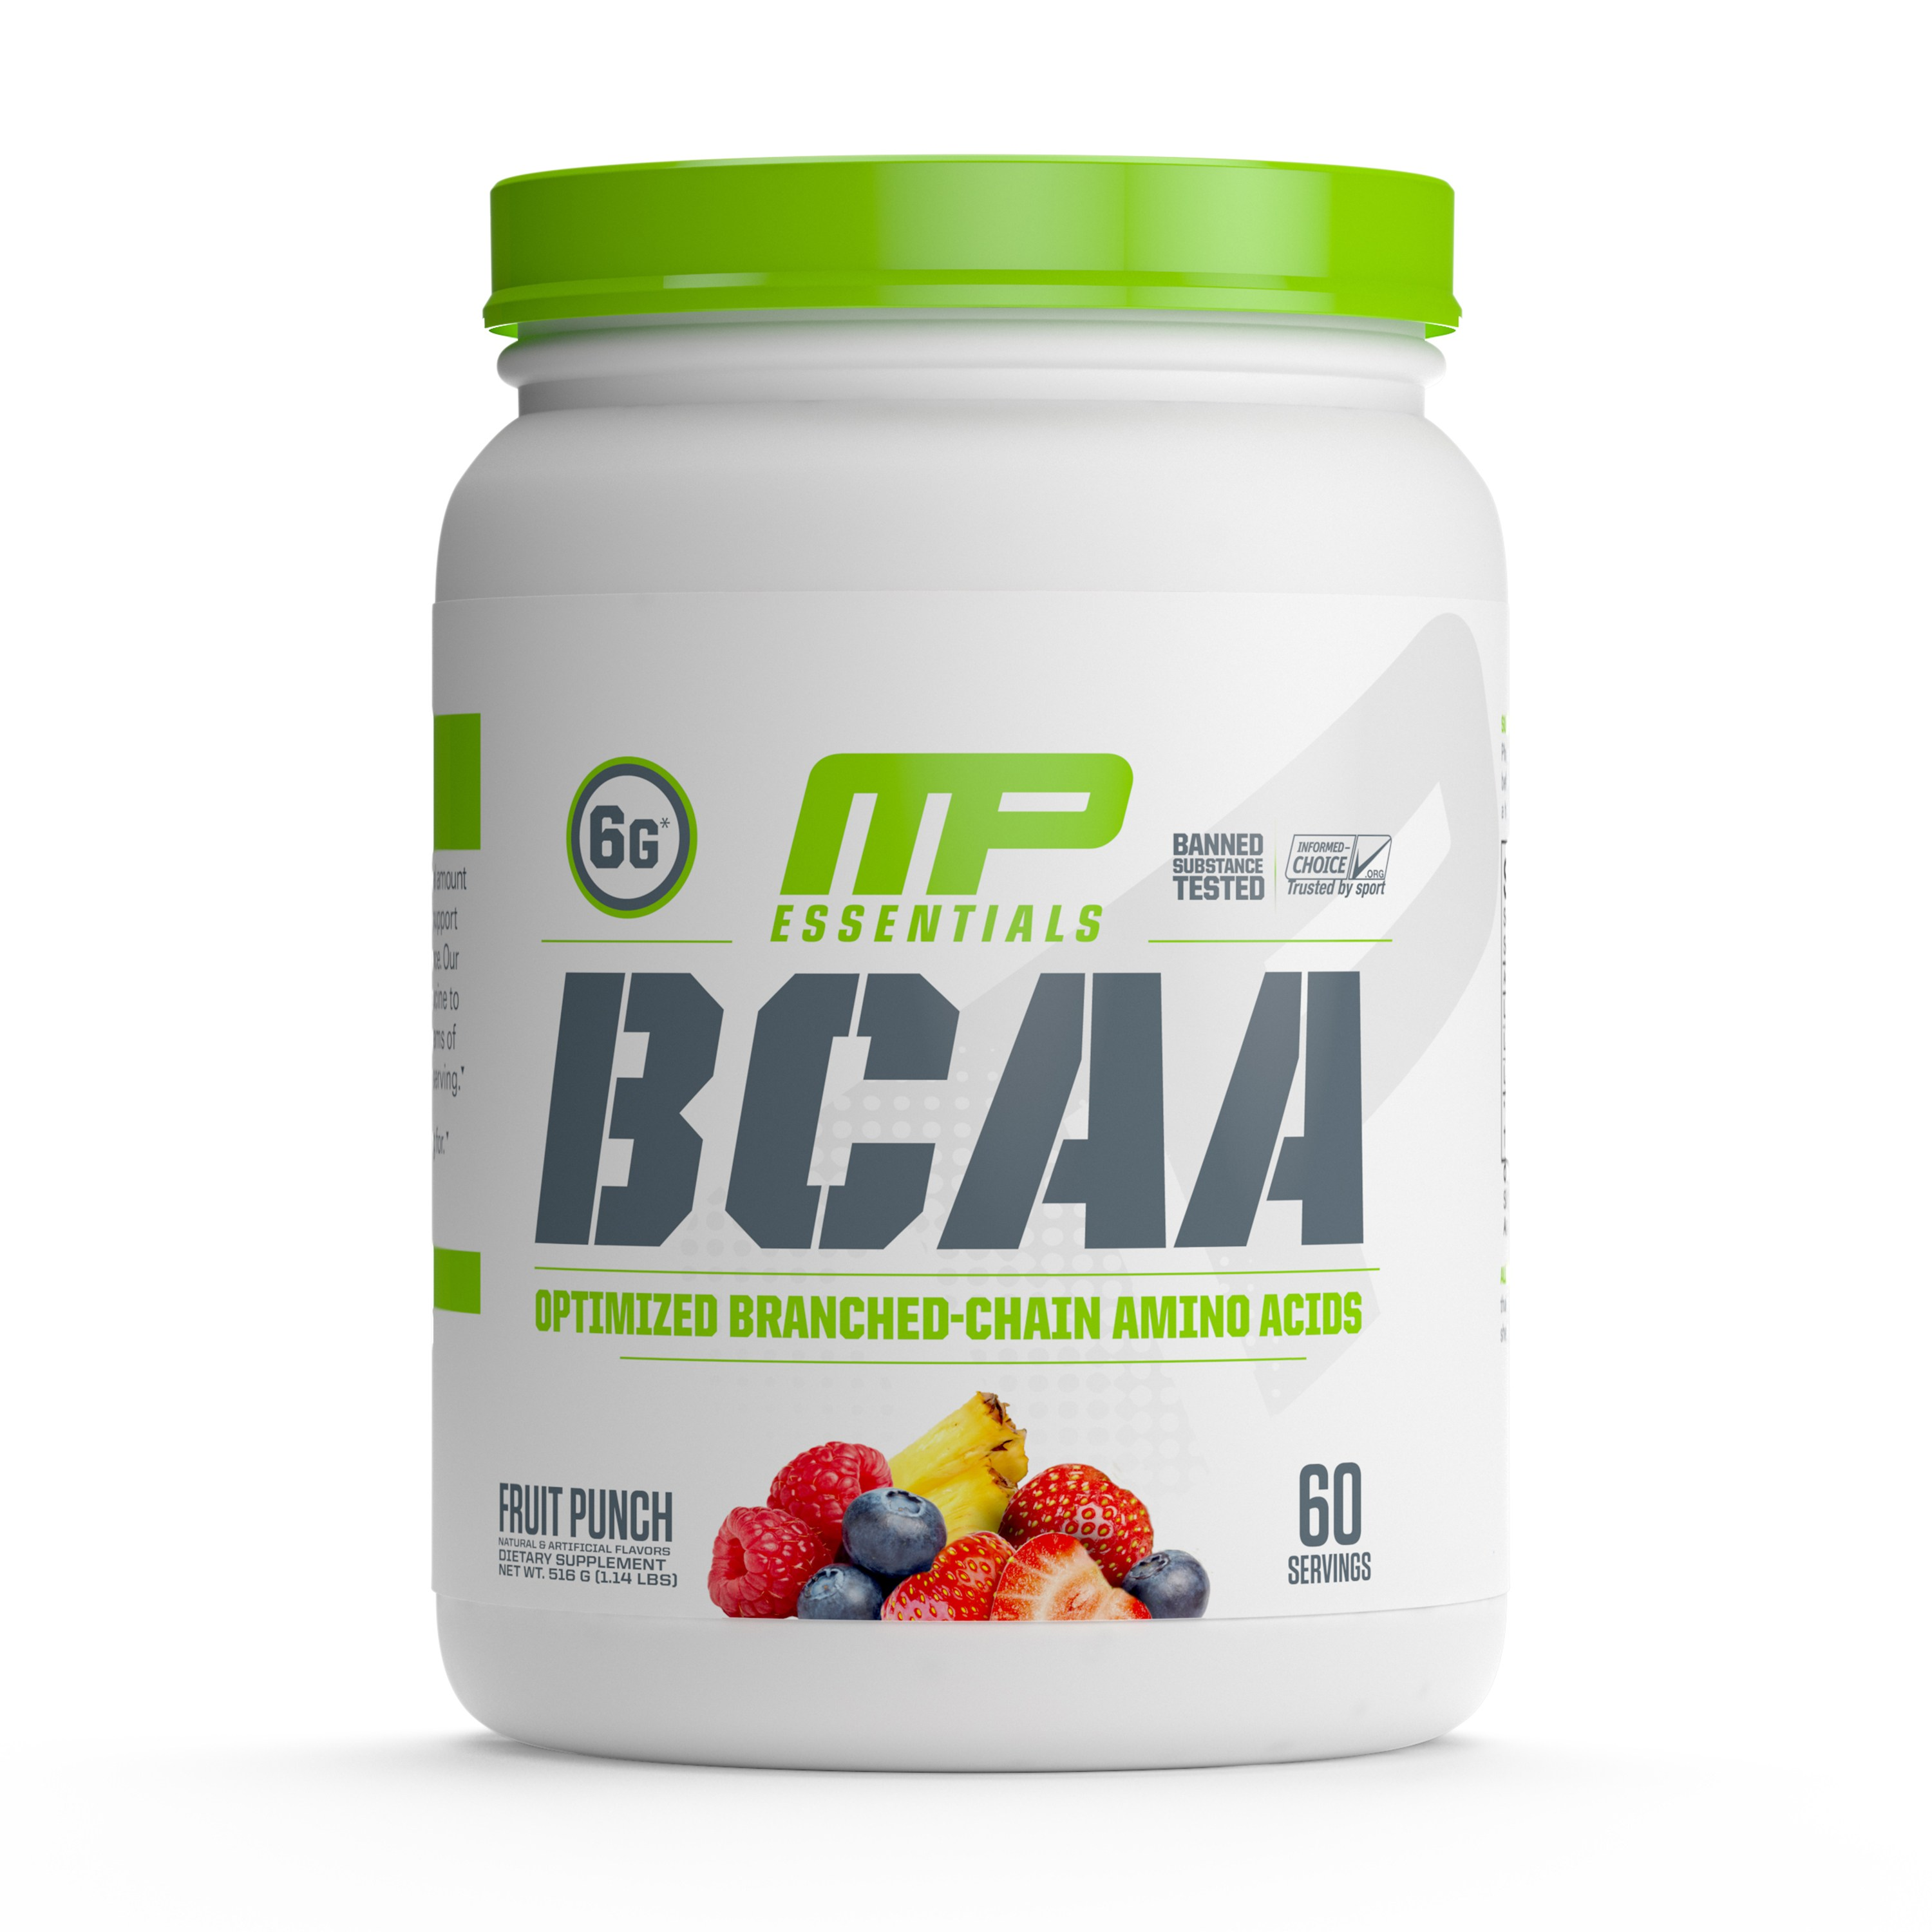 Musclepharm 에센셜 BCAA, 60회, 프루트 펀치(Fruit Punch)